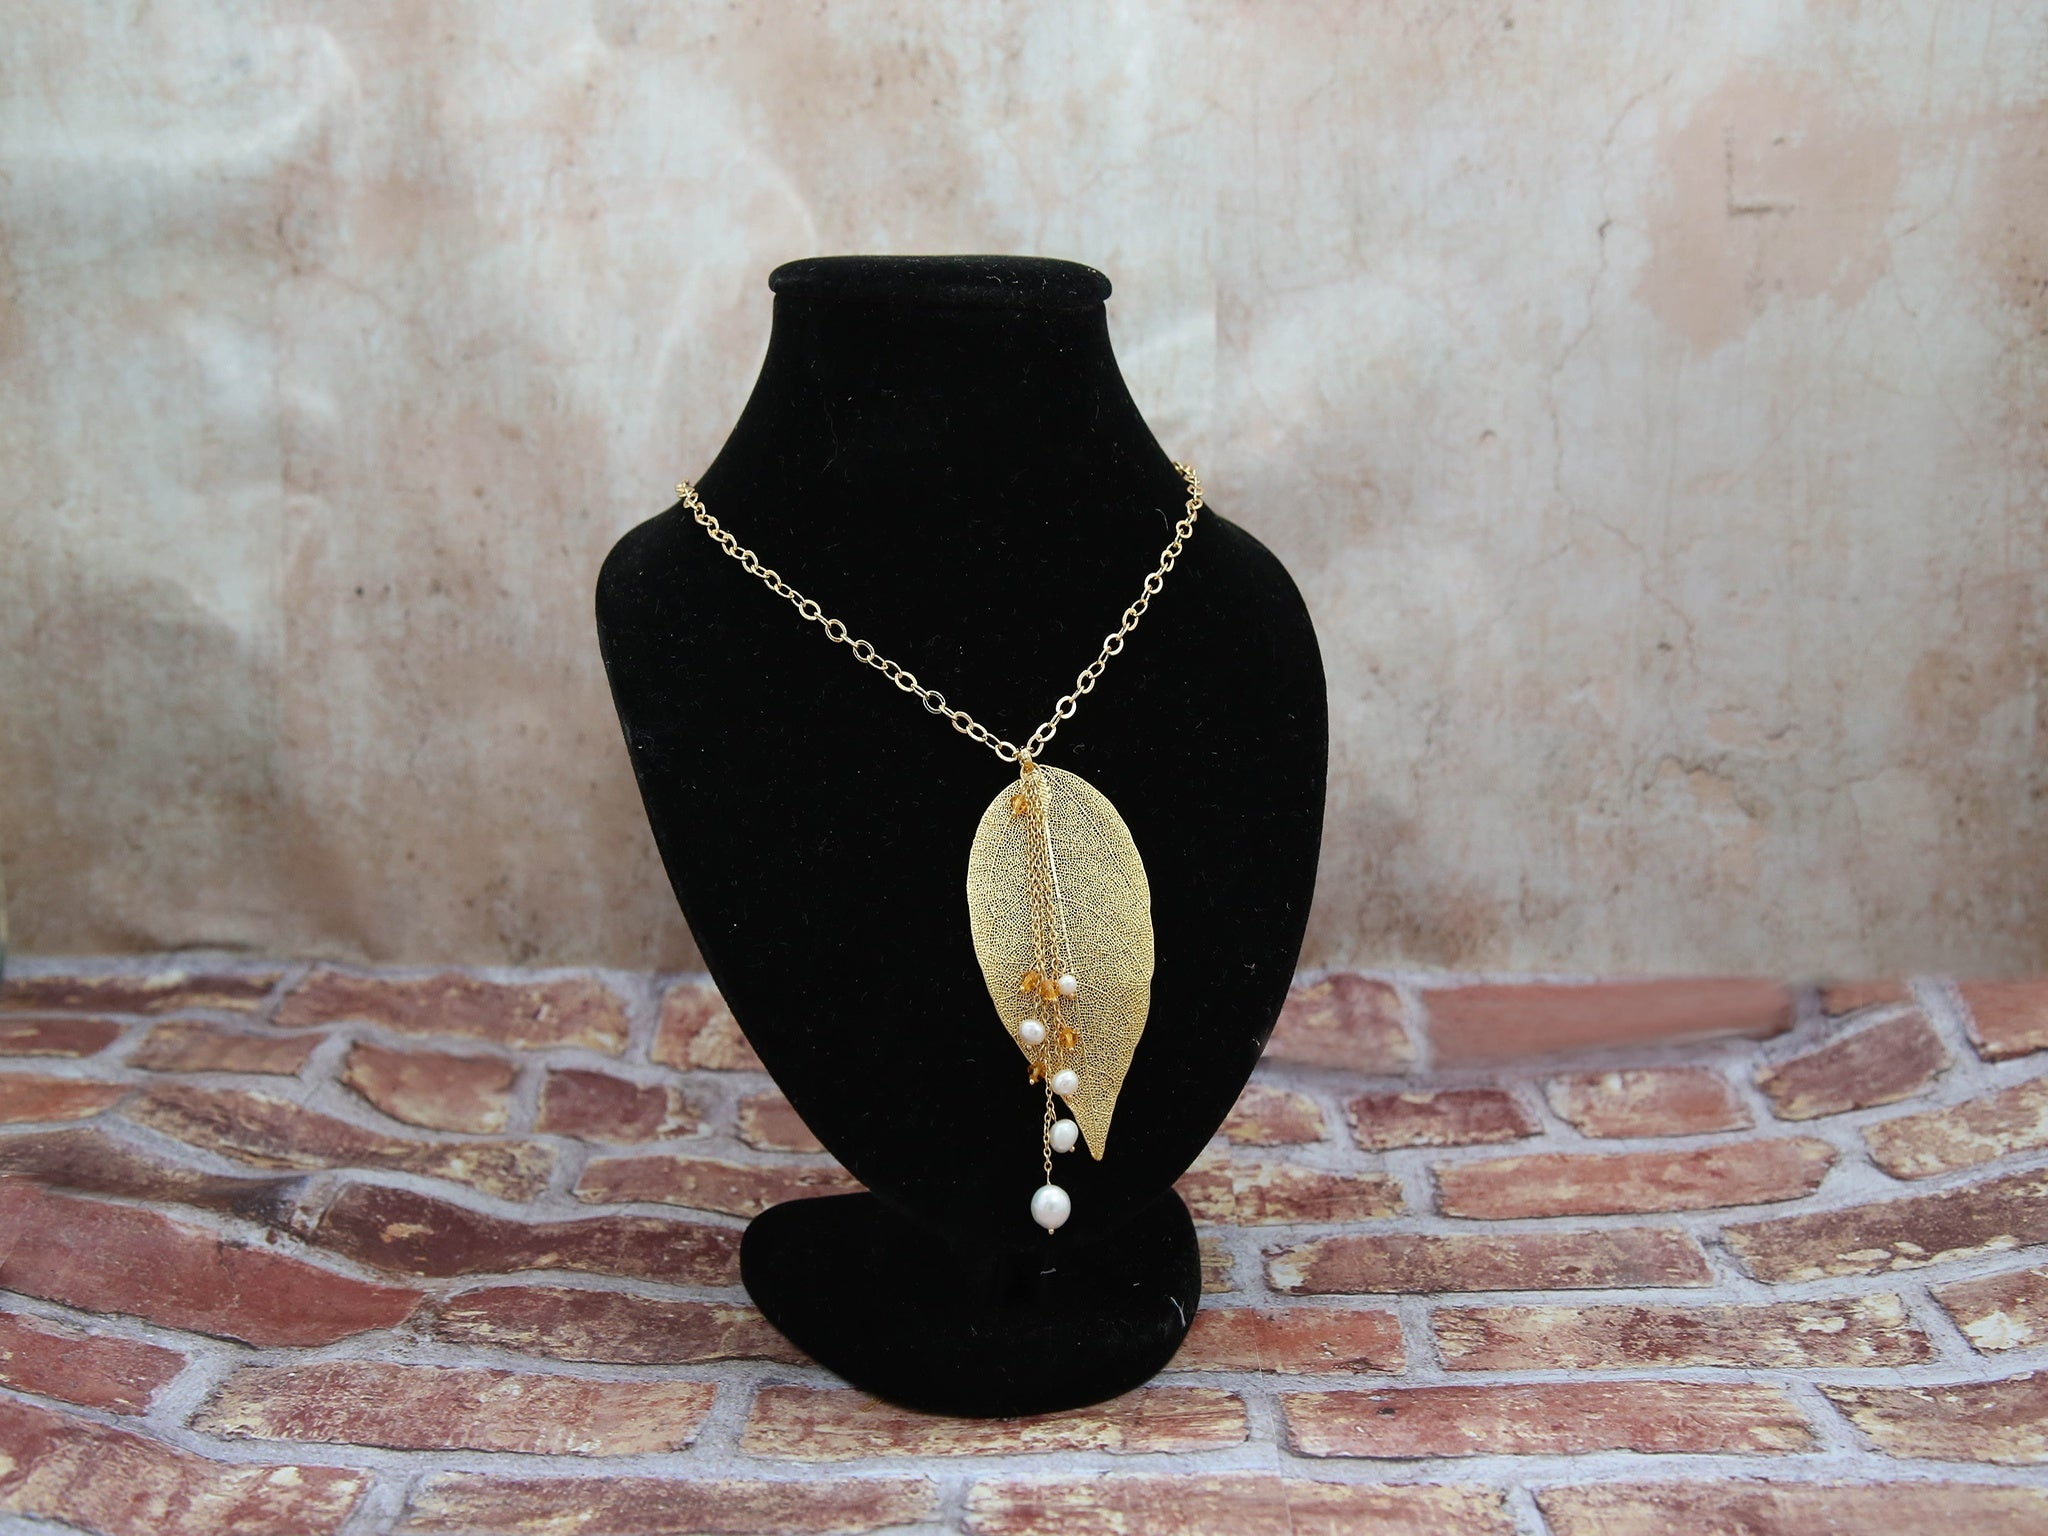 Necklace-One of A Kind gold leaf